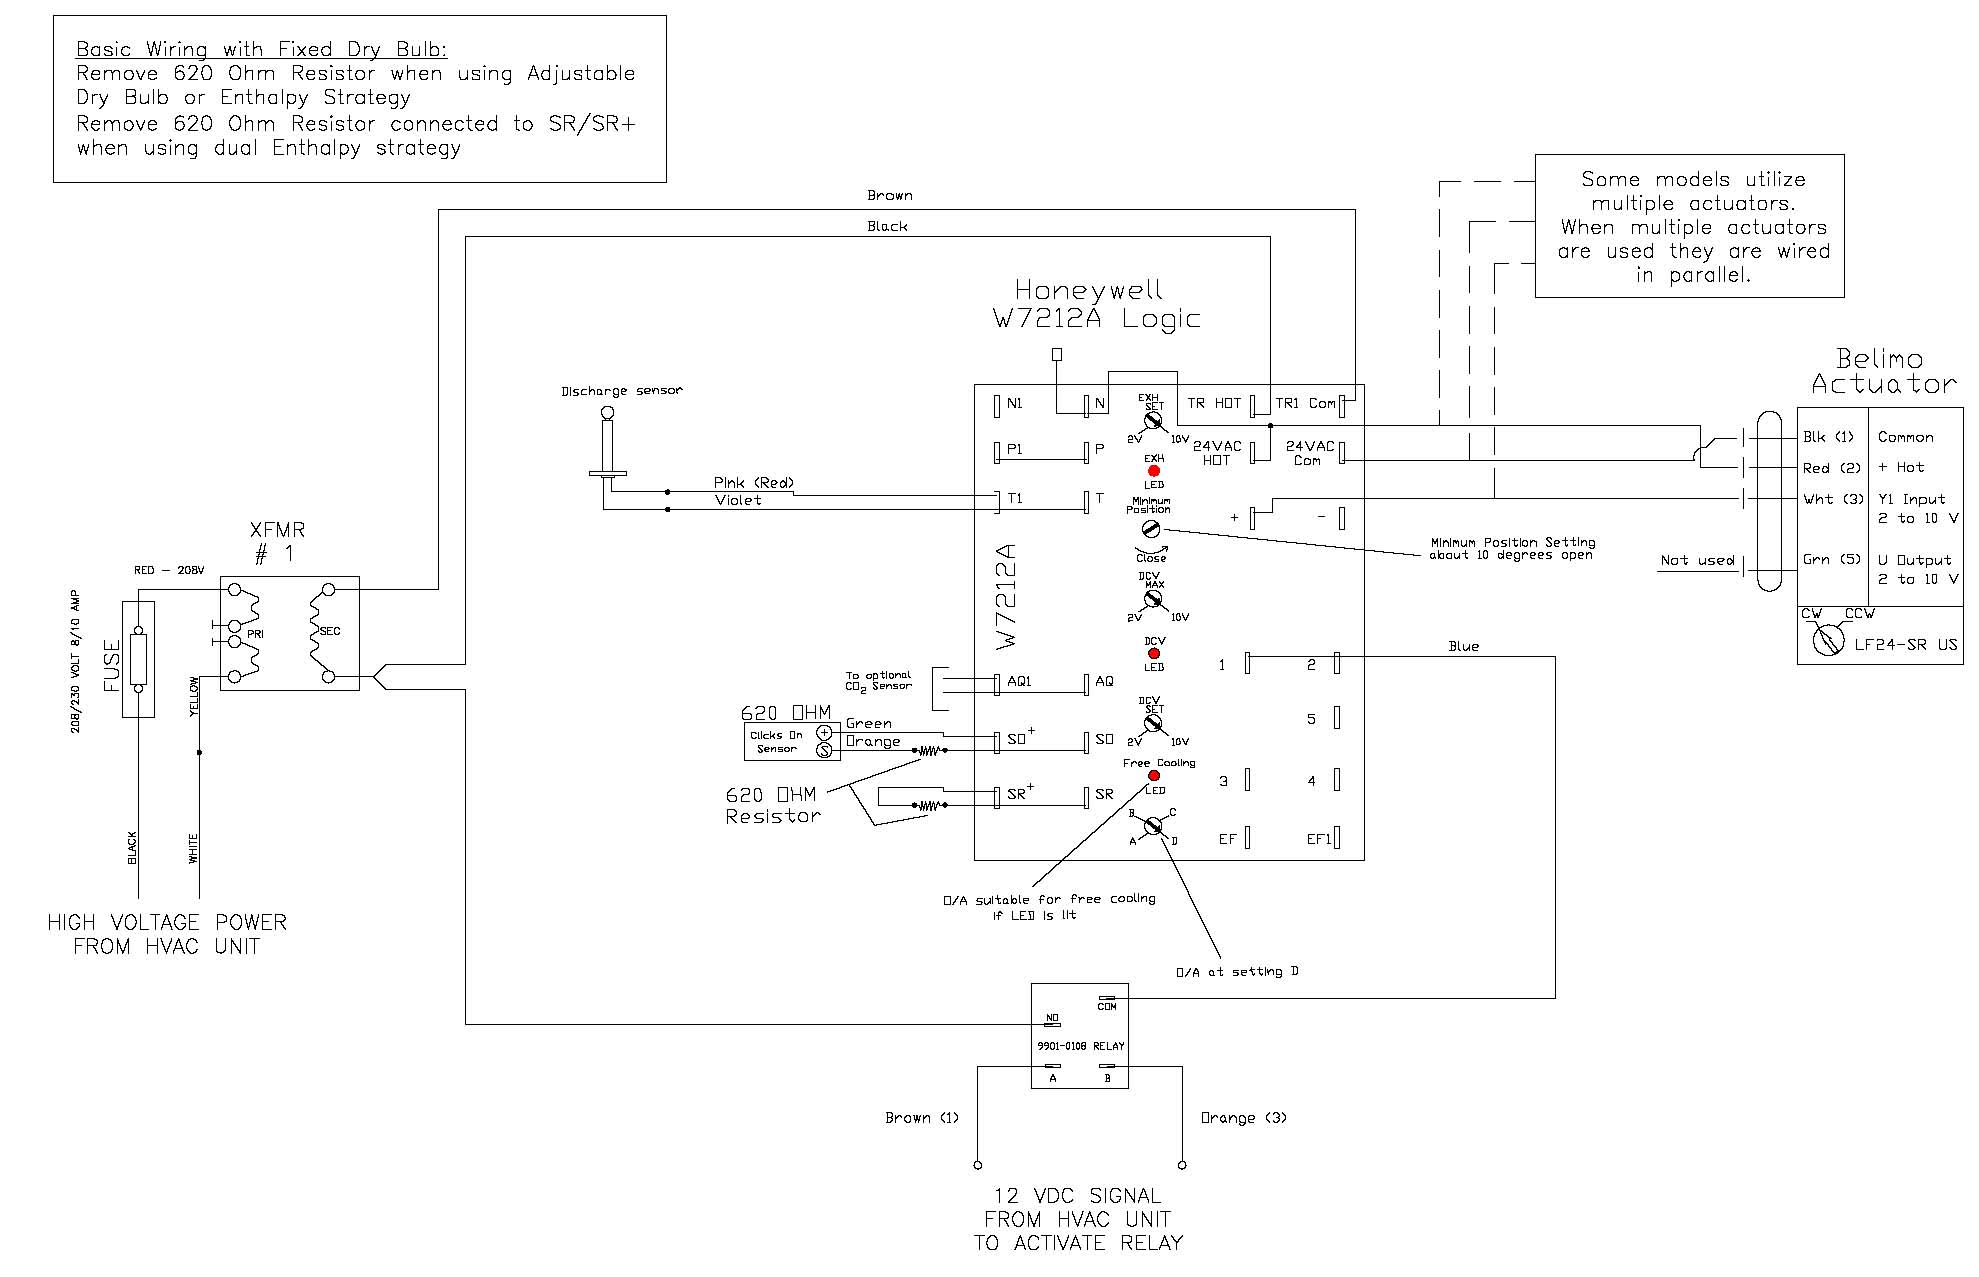 California Economizer Wiring Diagram Old Carrier Diagrams Working With The Honeywell W7212 Controller How I Came For